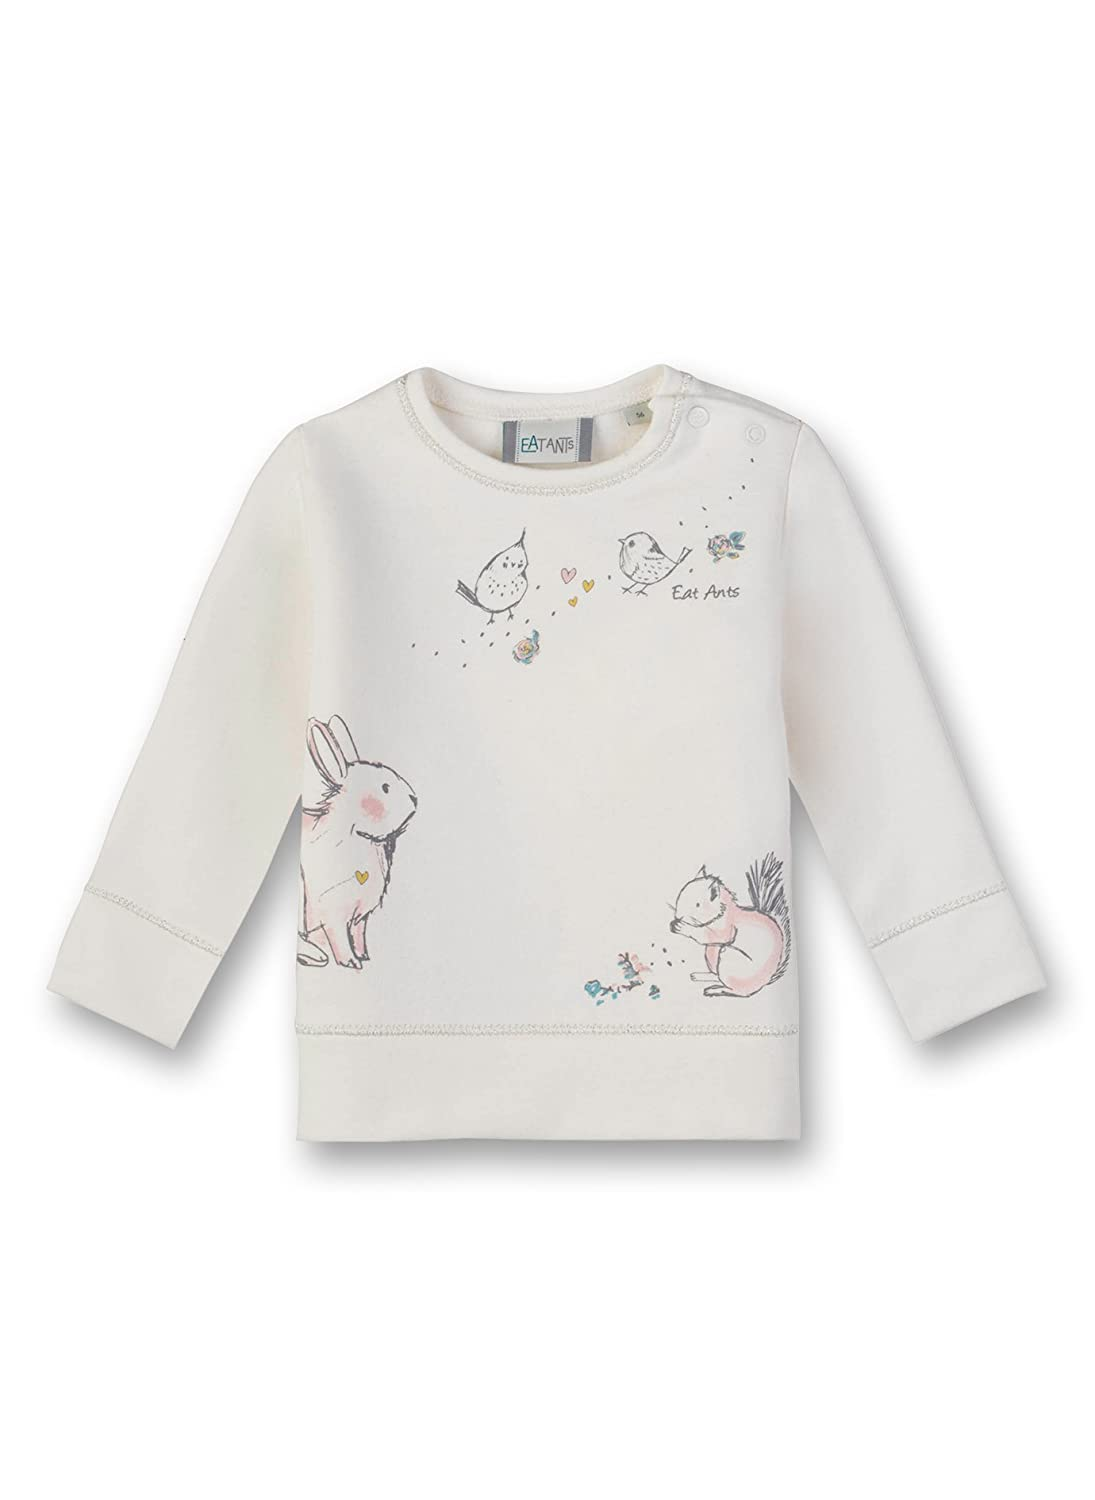 Sanetta Baby Girls Sweatshirt 114373.0